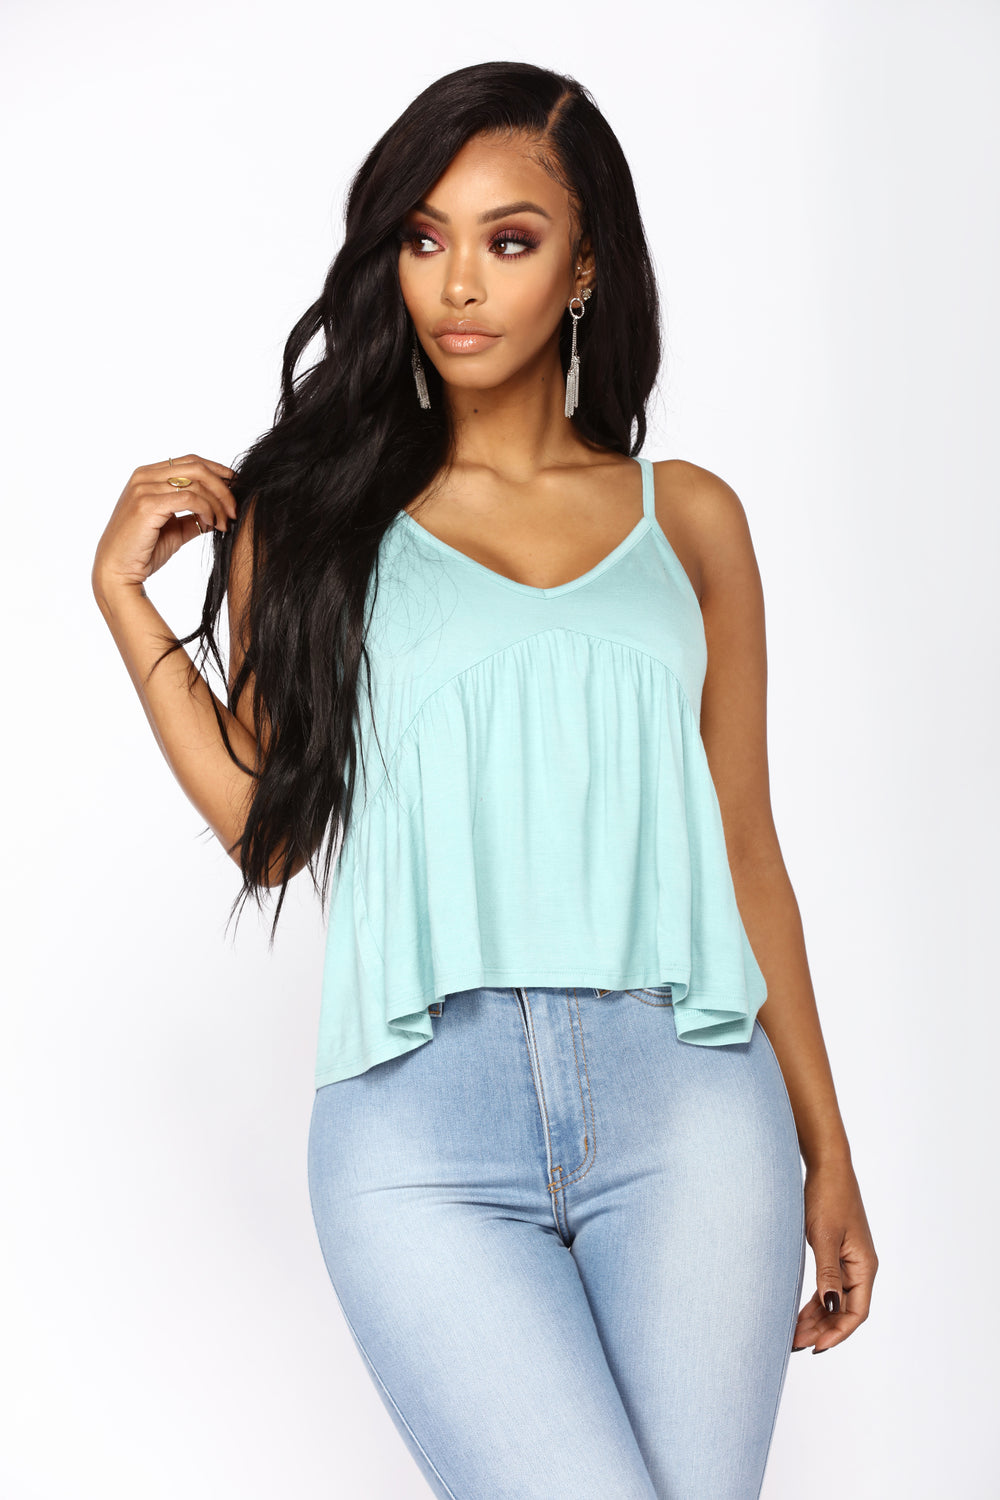 After Hours Peplum Top - Turquoise